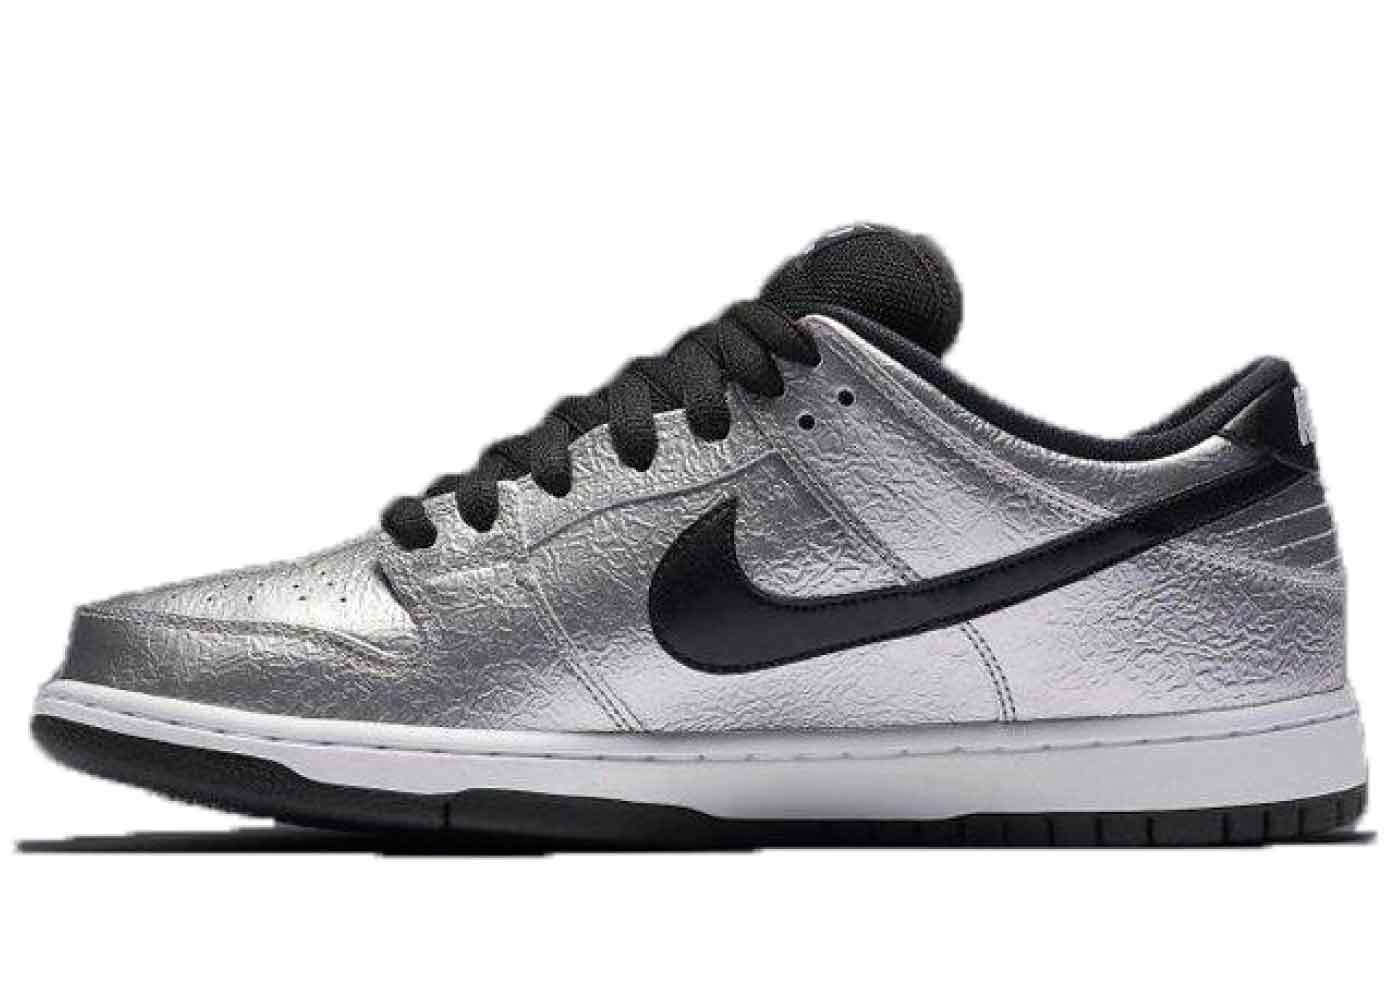 Nike SB Dunk Low Cold Pizzaの写真